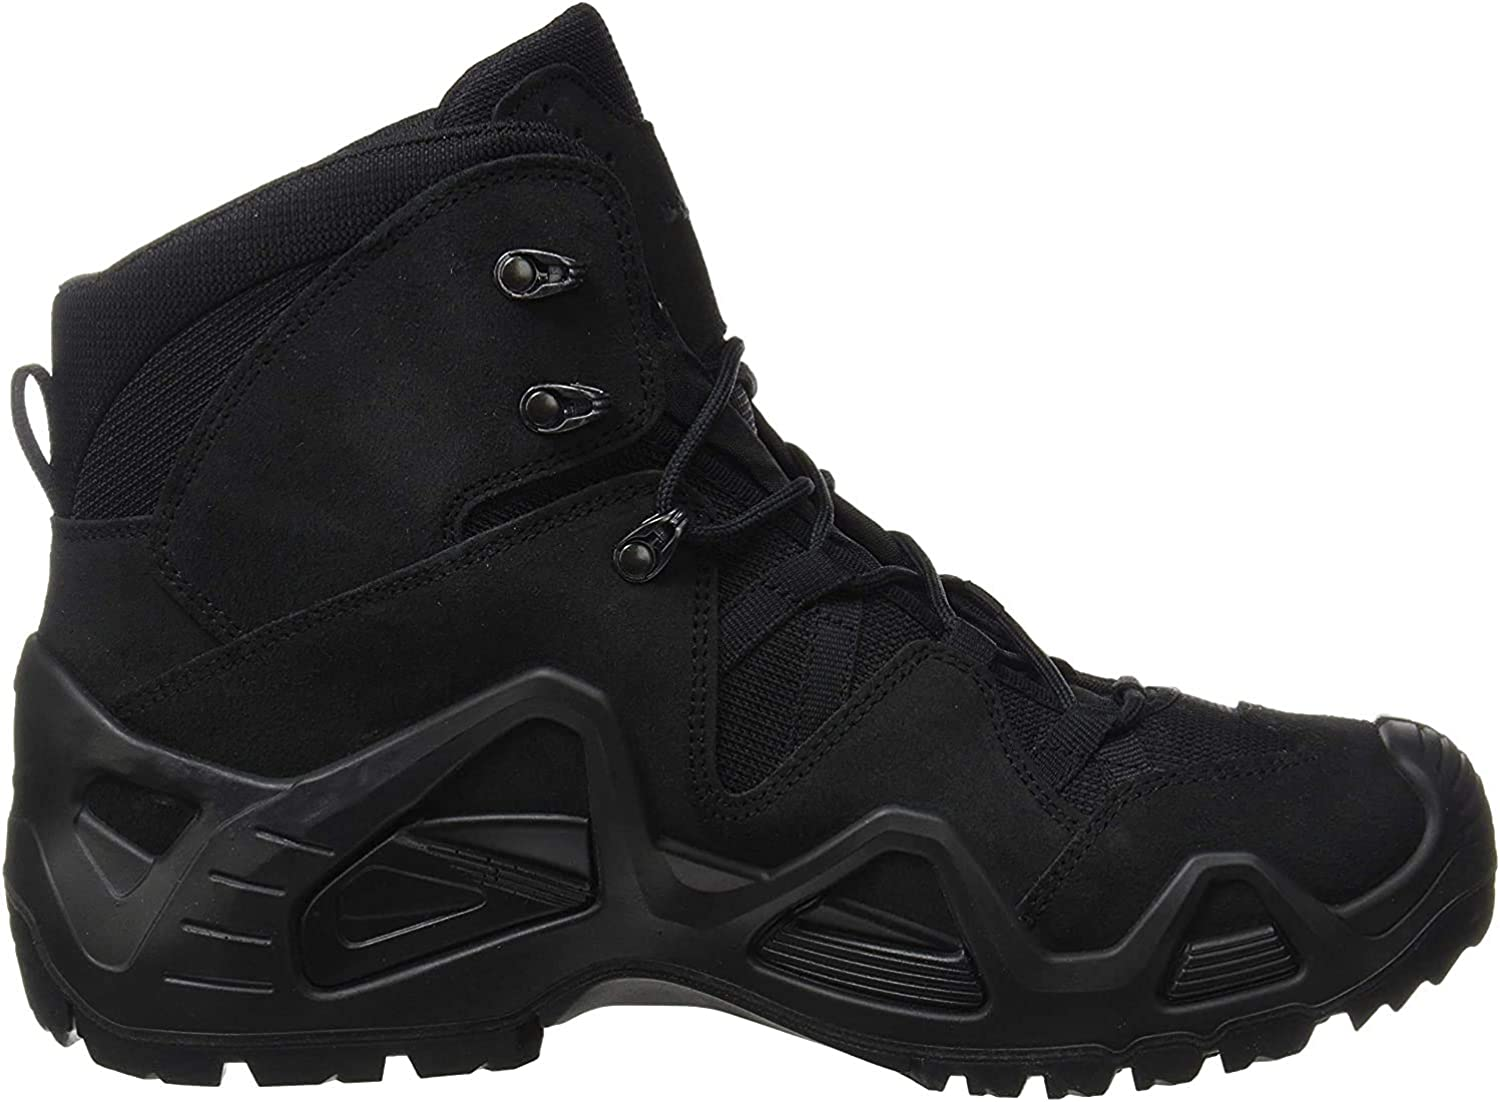 Lowa Mens Zephyr Gore-Tex Mid Task Force Military Hiking Leather Boot